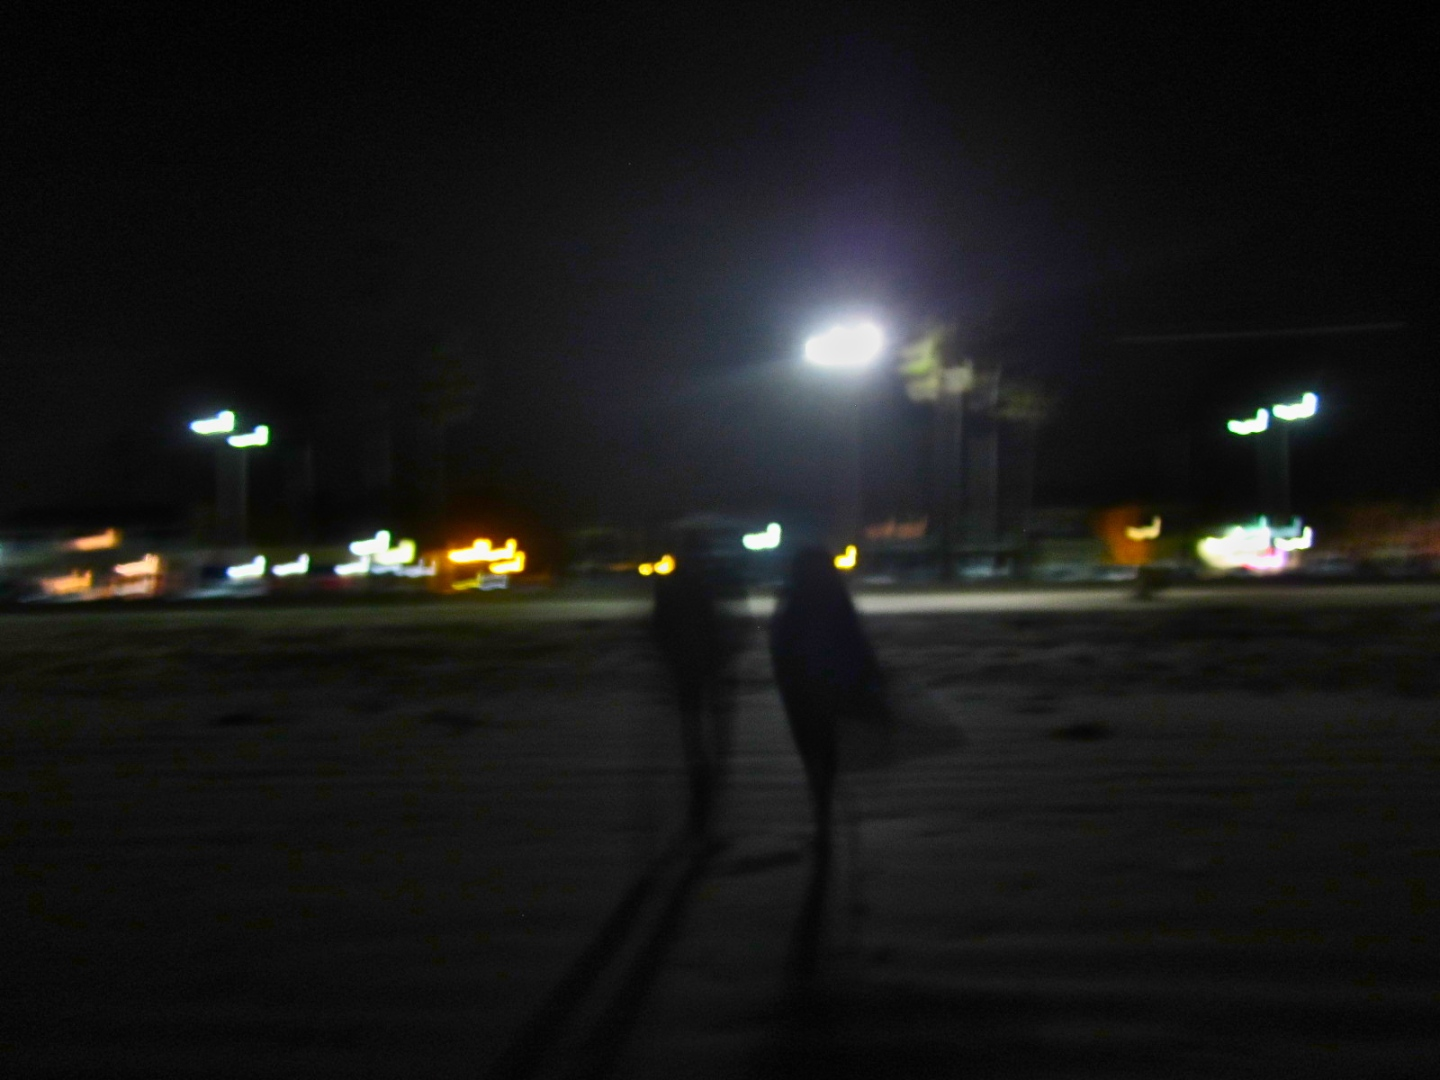 5 Reasons Why I Love The Beach At Night – One Cool Thing Every Weekend